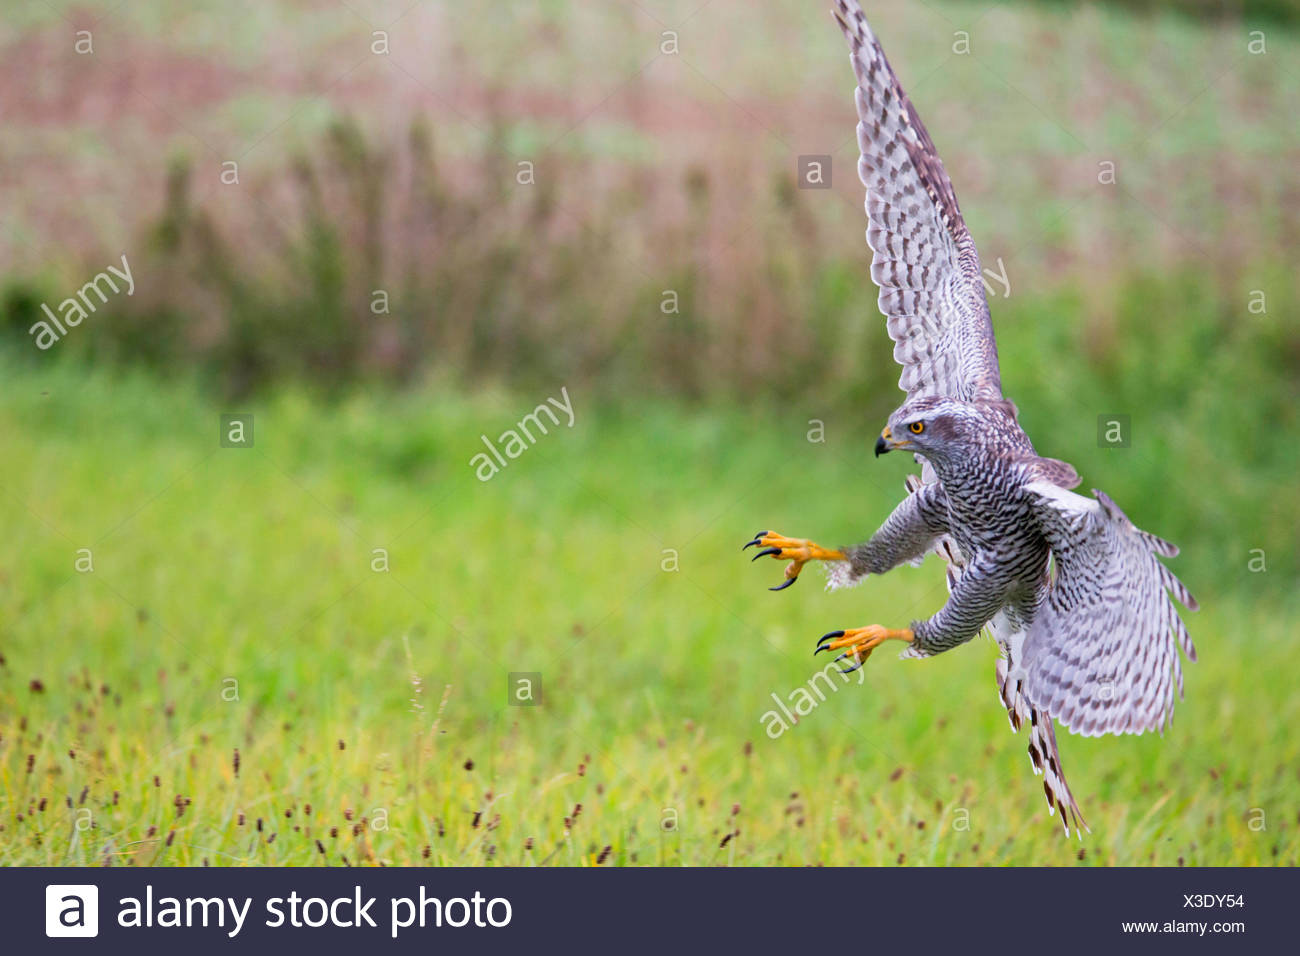 northern goshawk (Accipiter gentilis), landing on grass, Germany, Bavaria, Niederbayern, Lower Bavaria - Stock Image